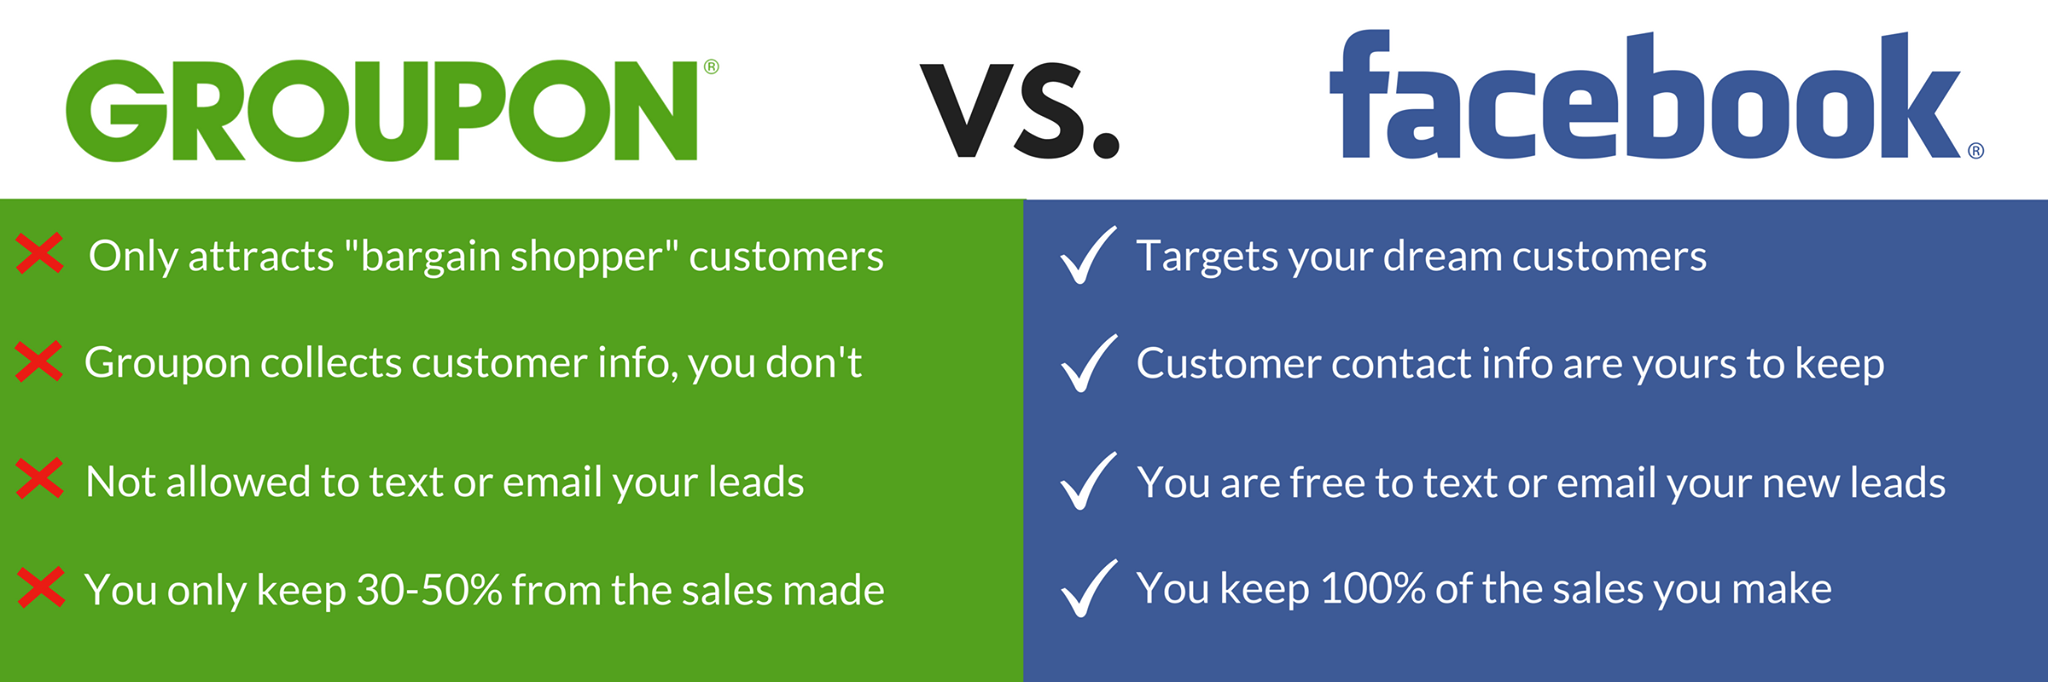 Comparing Facebook and Groupon